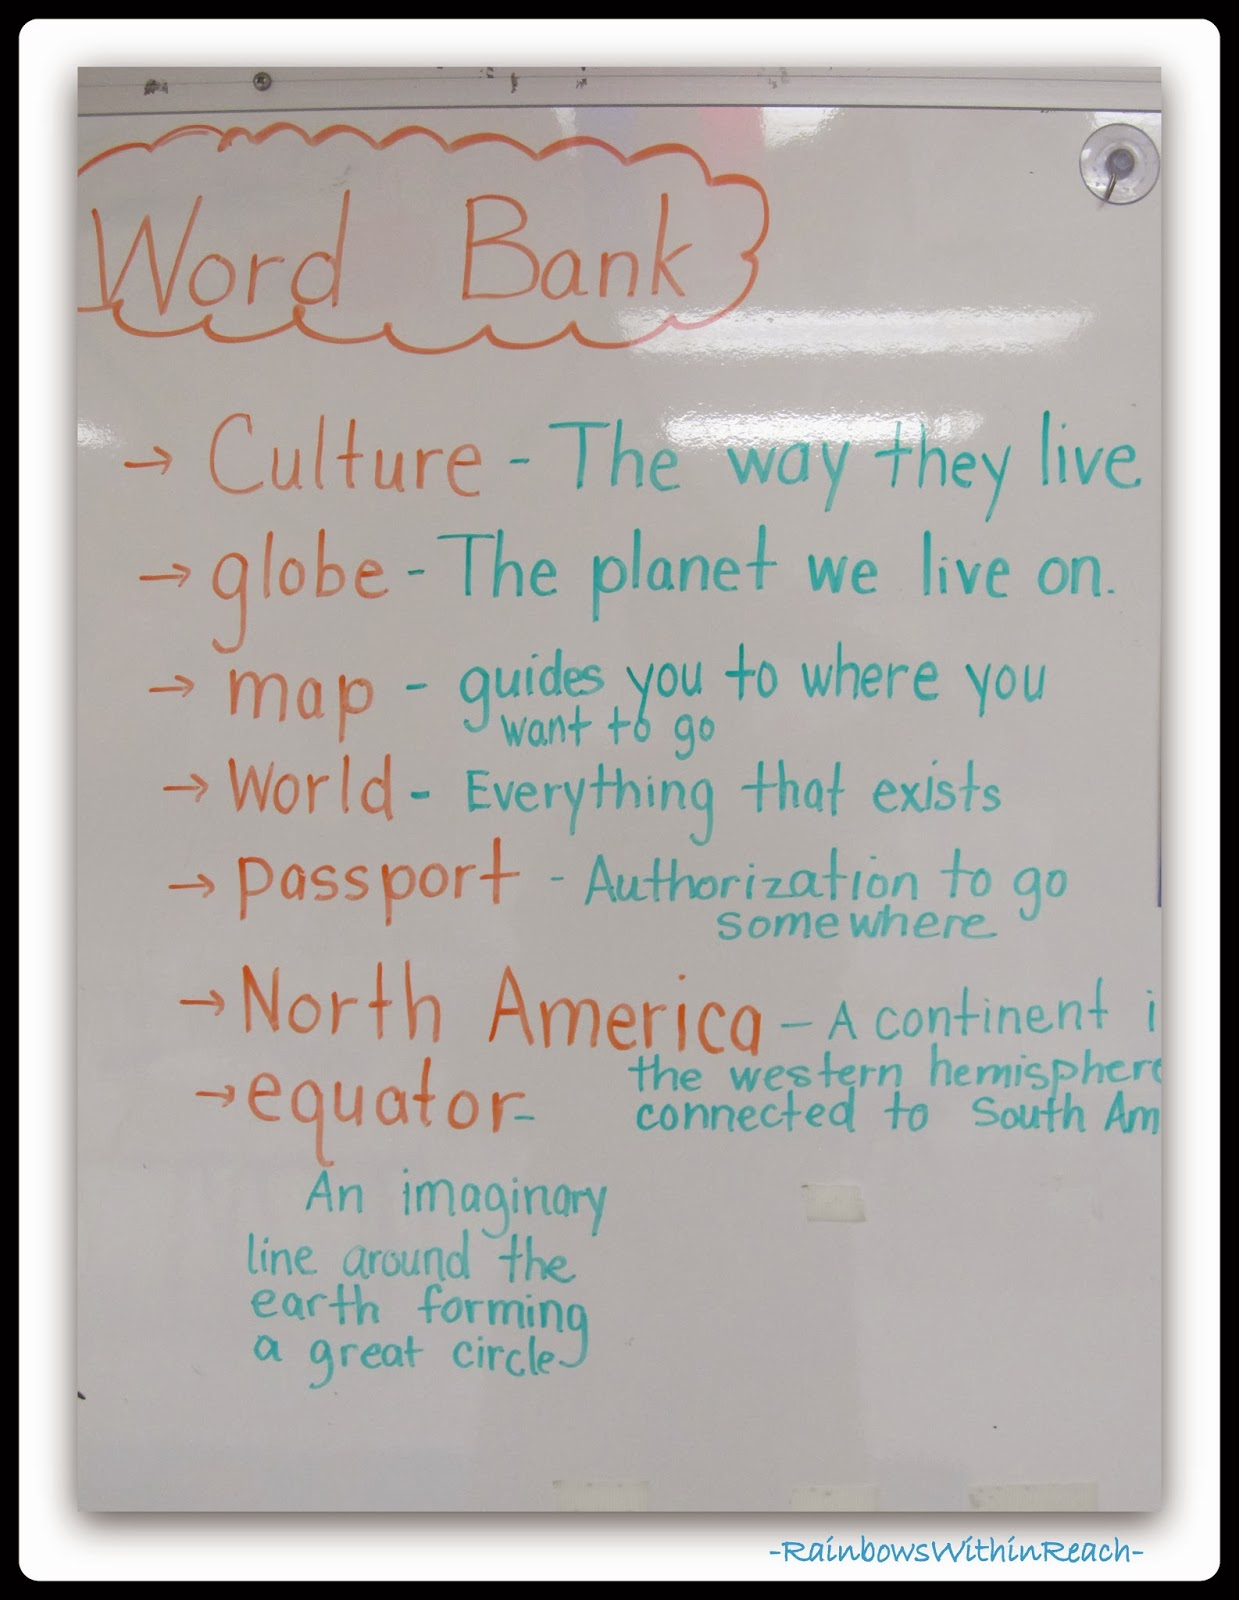 """Word Bank"" for Vocabulary Words with Definitions via RainbowsWithinReach"